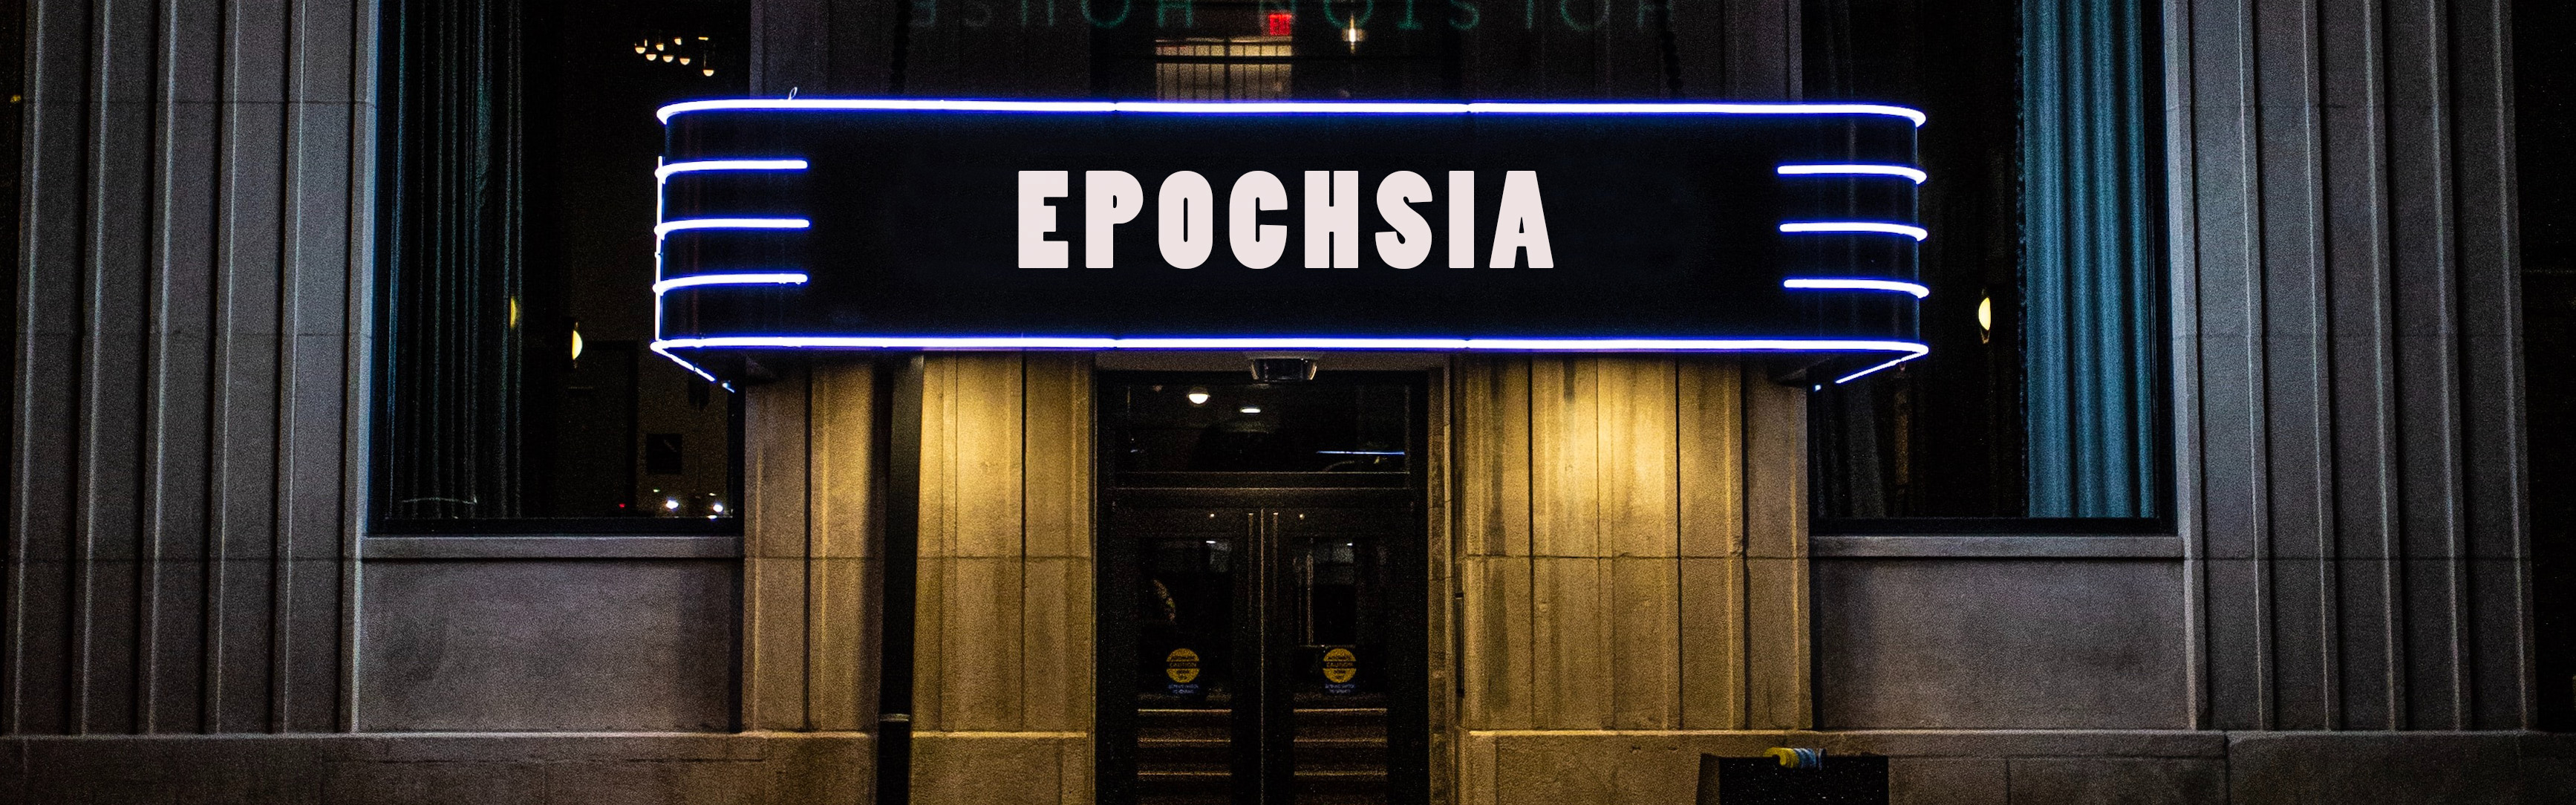 潮勝有限公司 EPOCHSIA CO., LTD